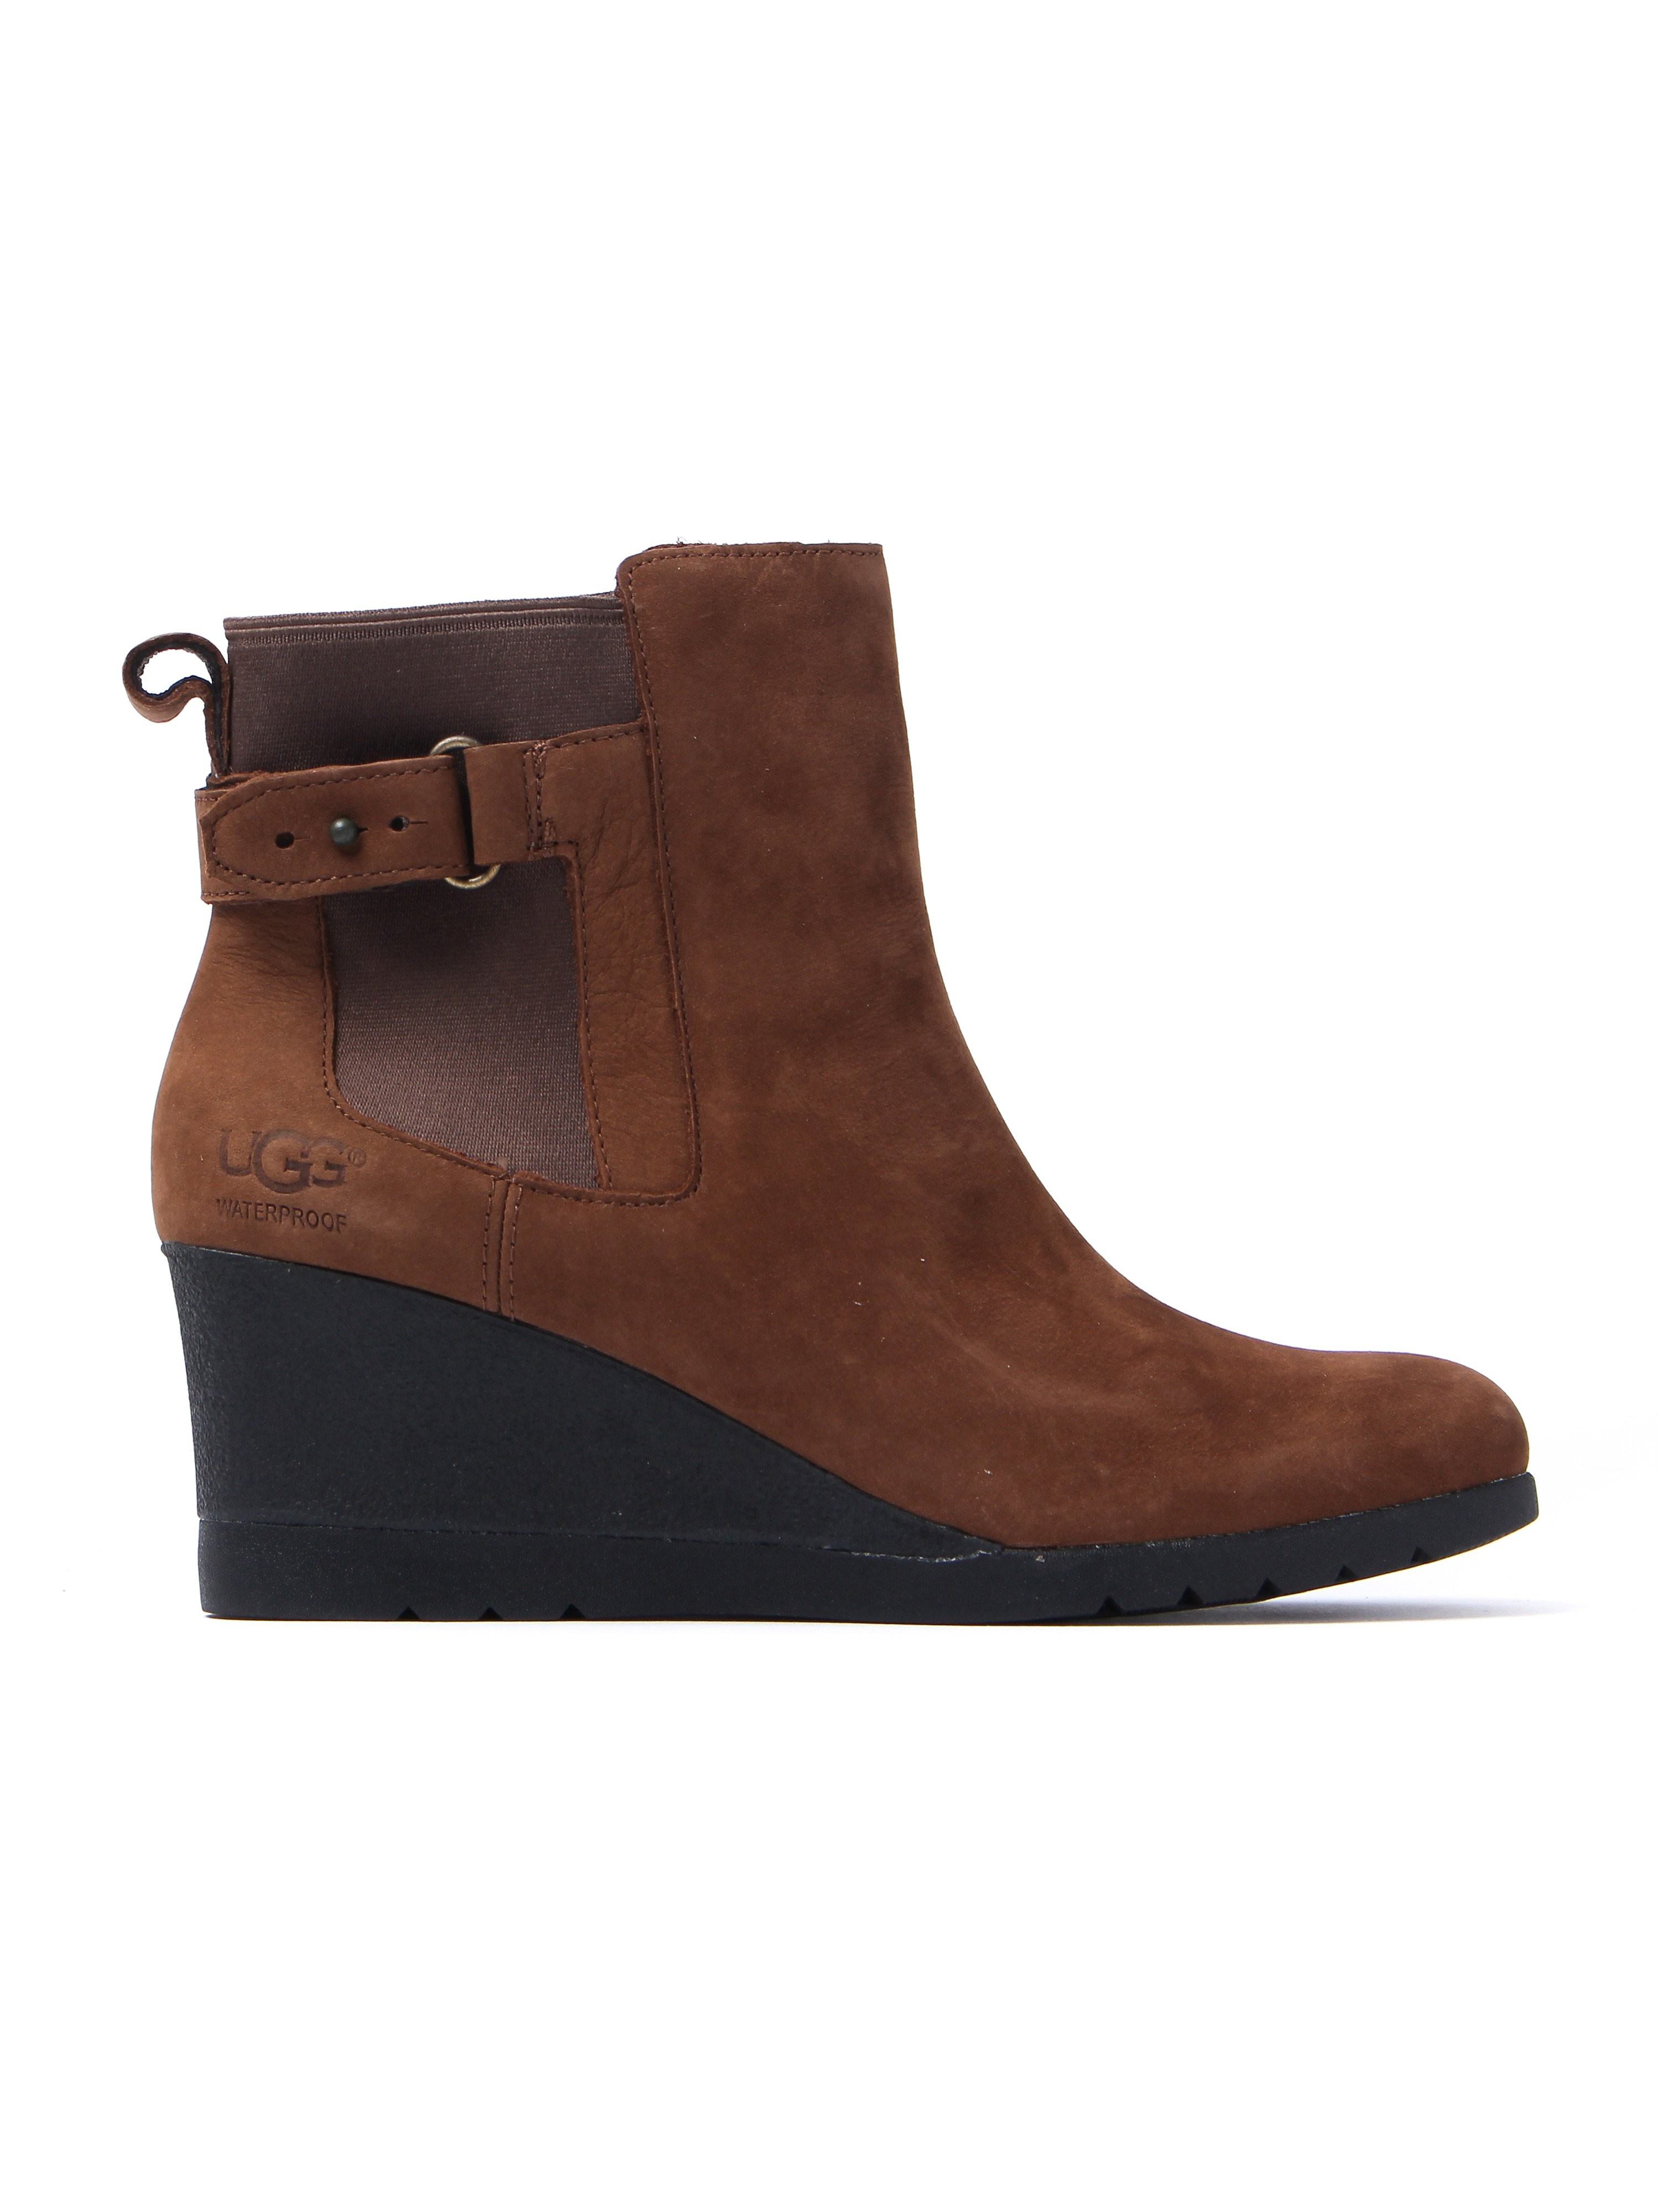 UGG Women's Indra Waterproof Boots - Stout Leather